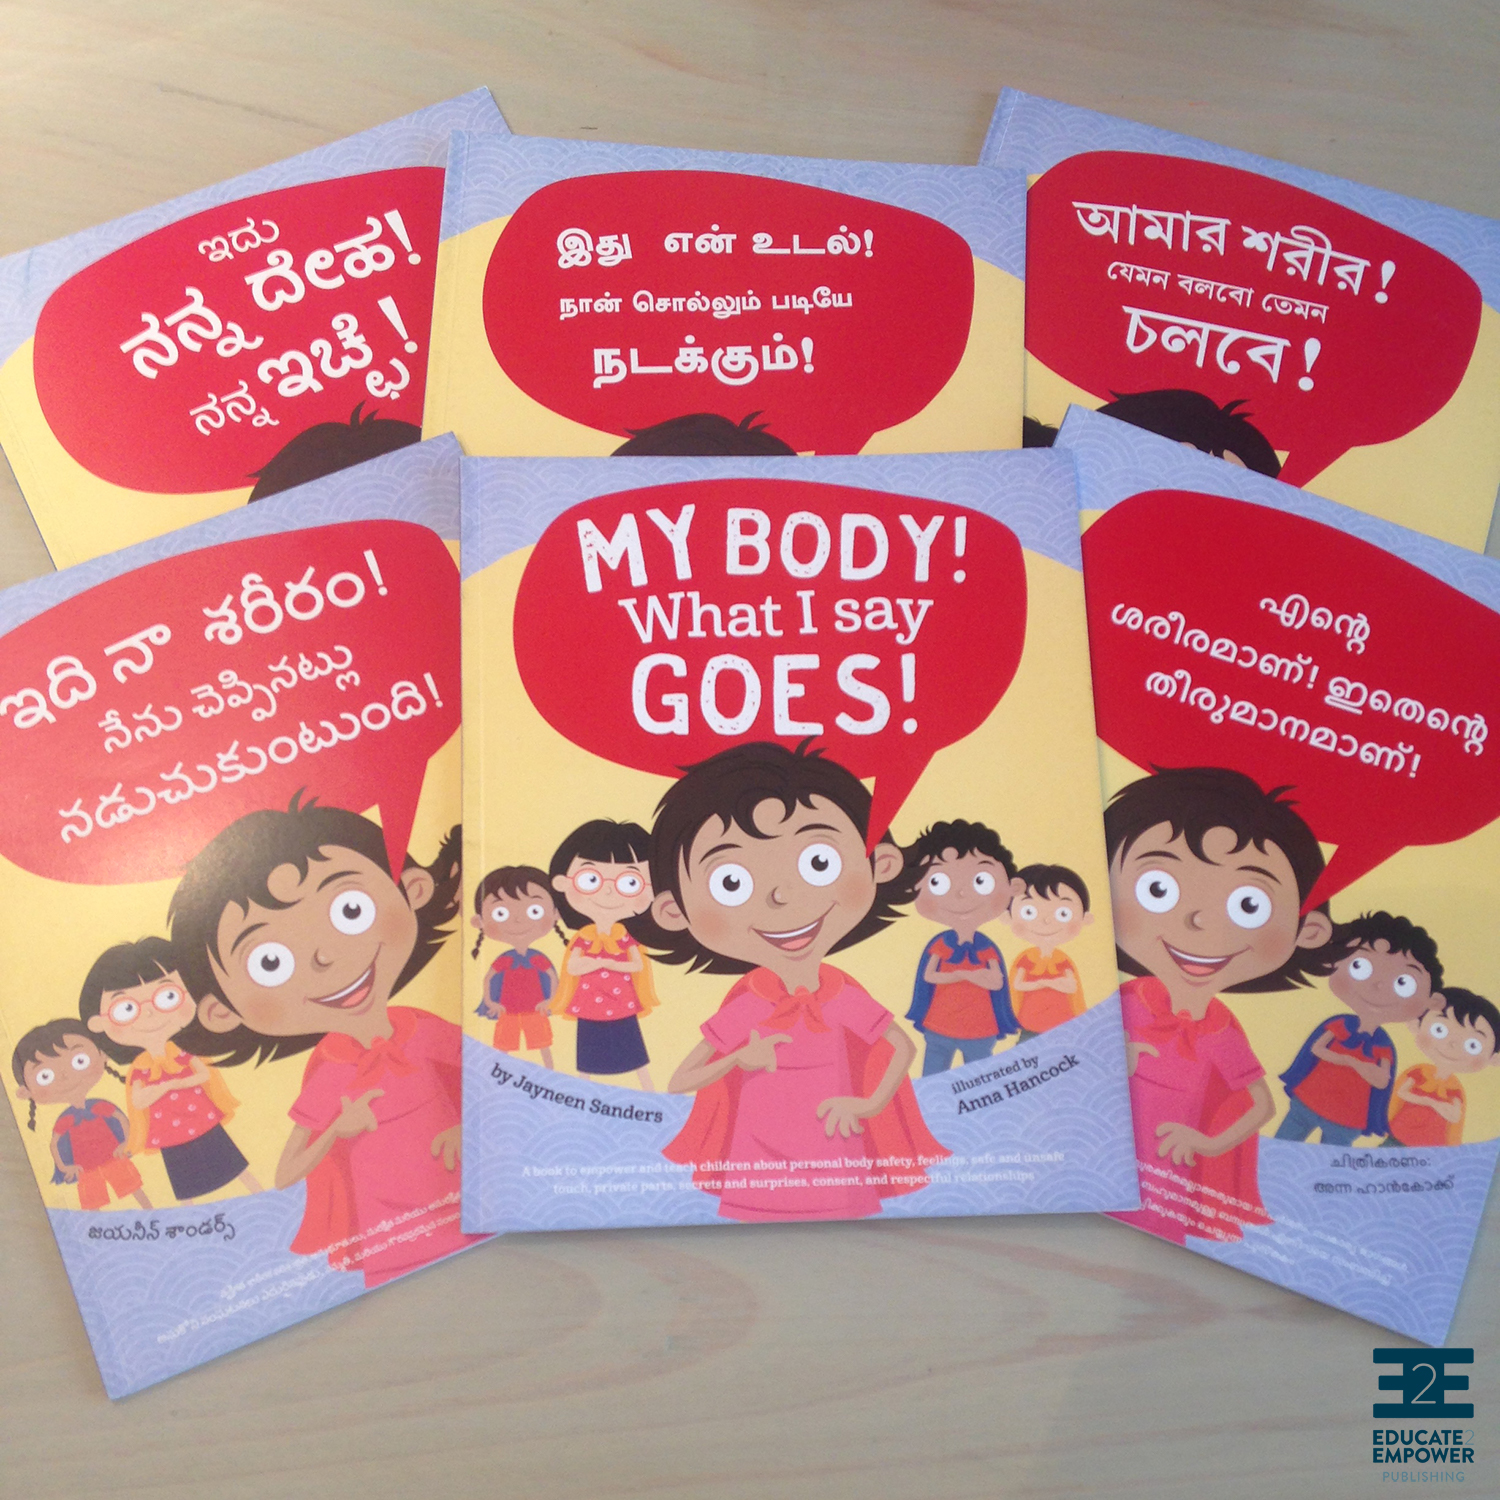 With thanks to World Vision India and the Indian Government, 'My Body! What I Say Goes!' Has been translated into six local languages with more than 1.5 million copies printed and distributed.